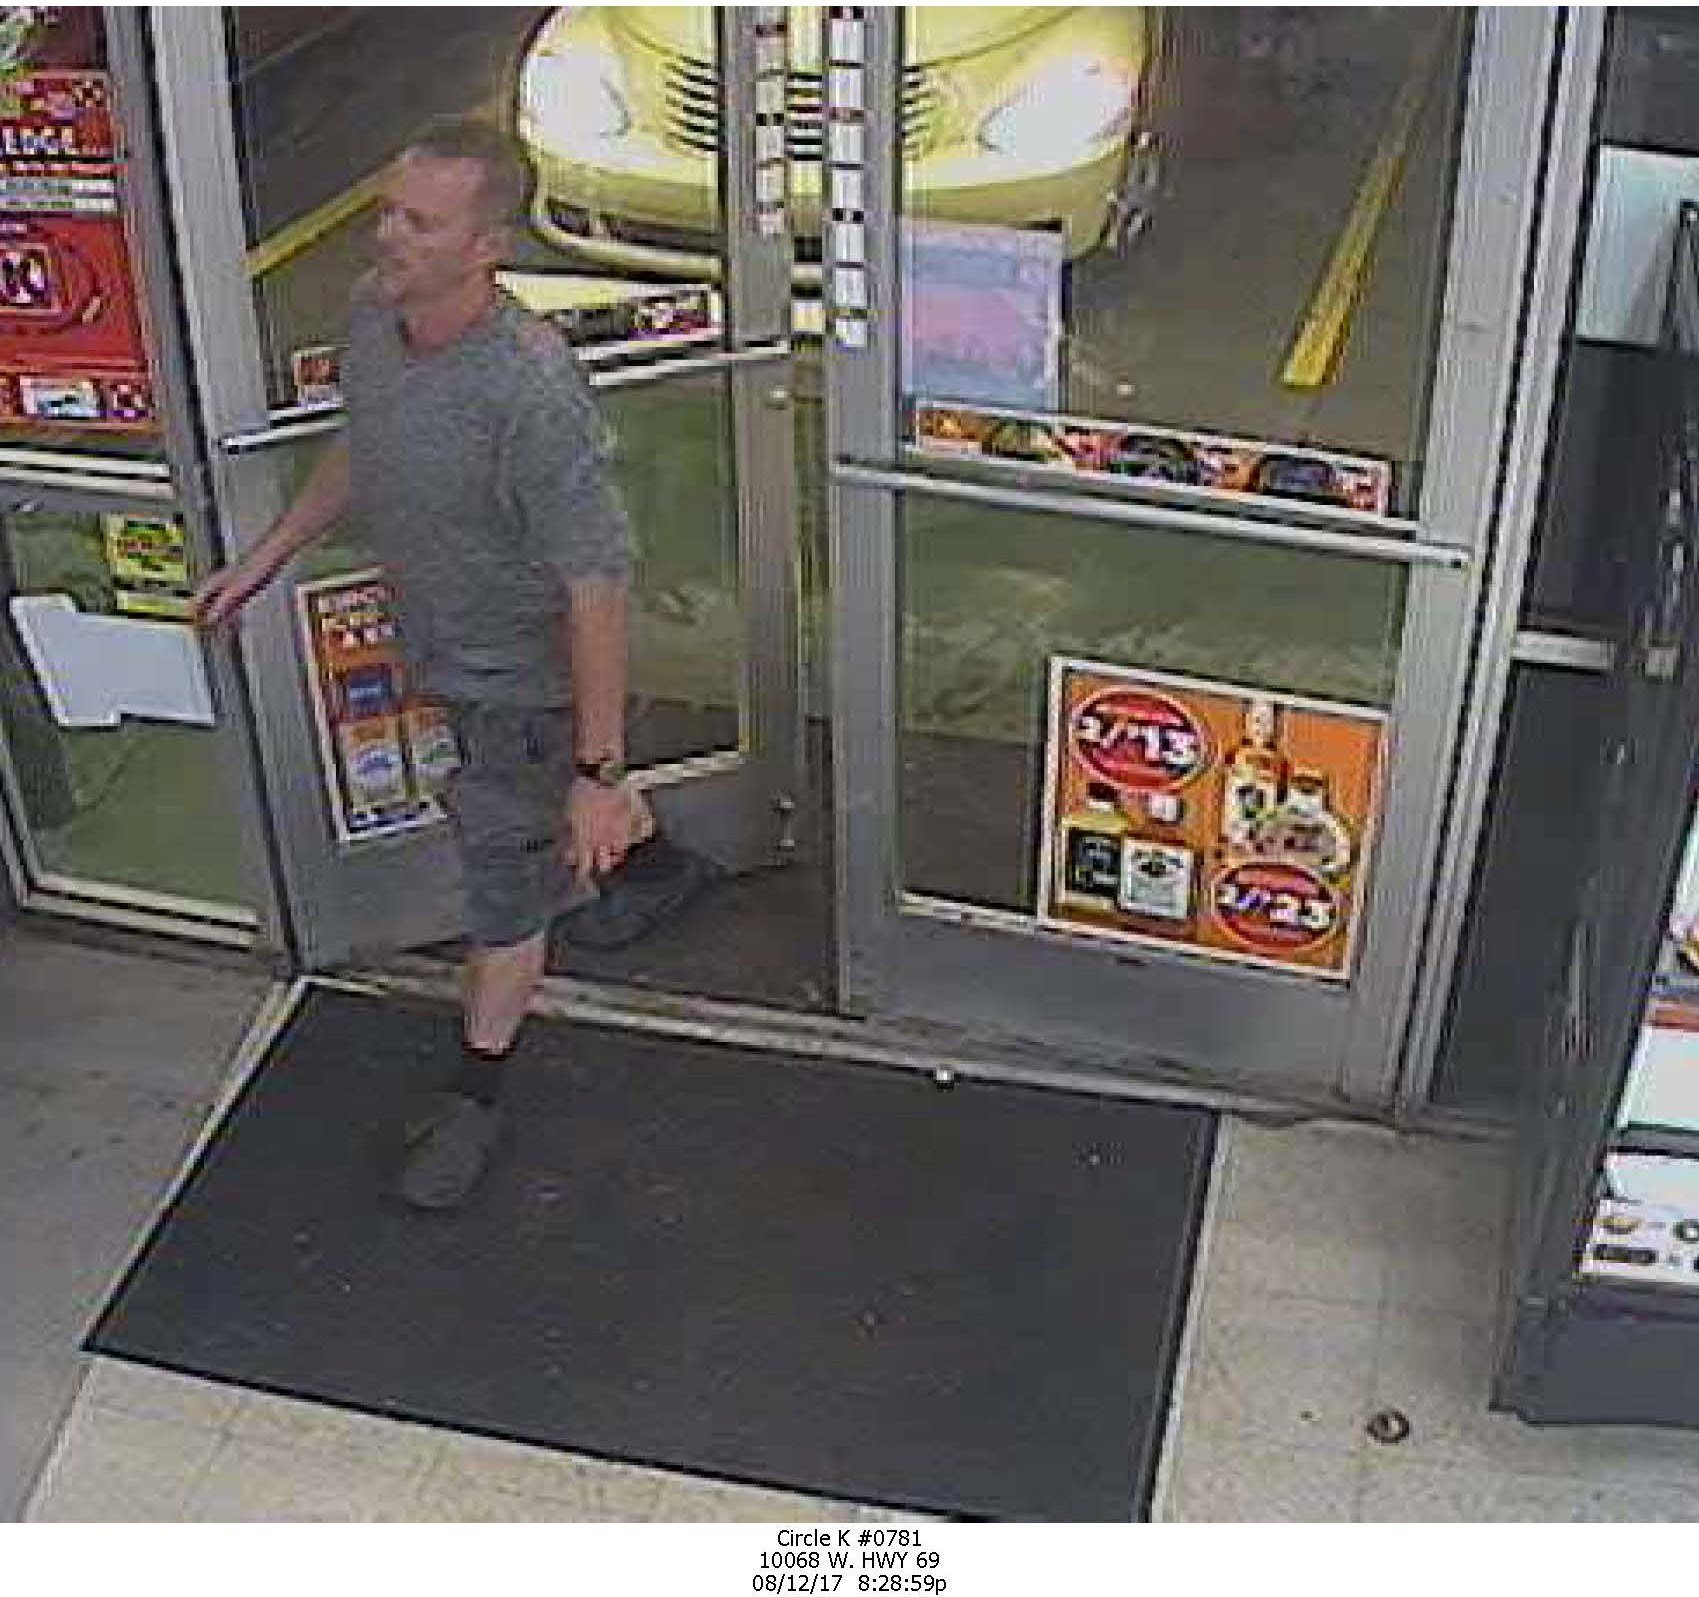 Man suspected of passing fake $100 bill. (Source: Yavapai County Sheriff)